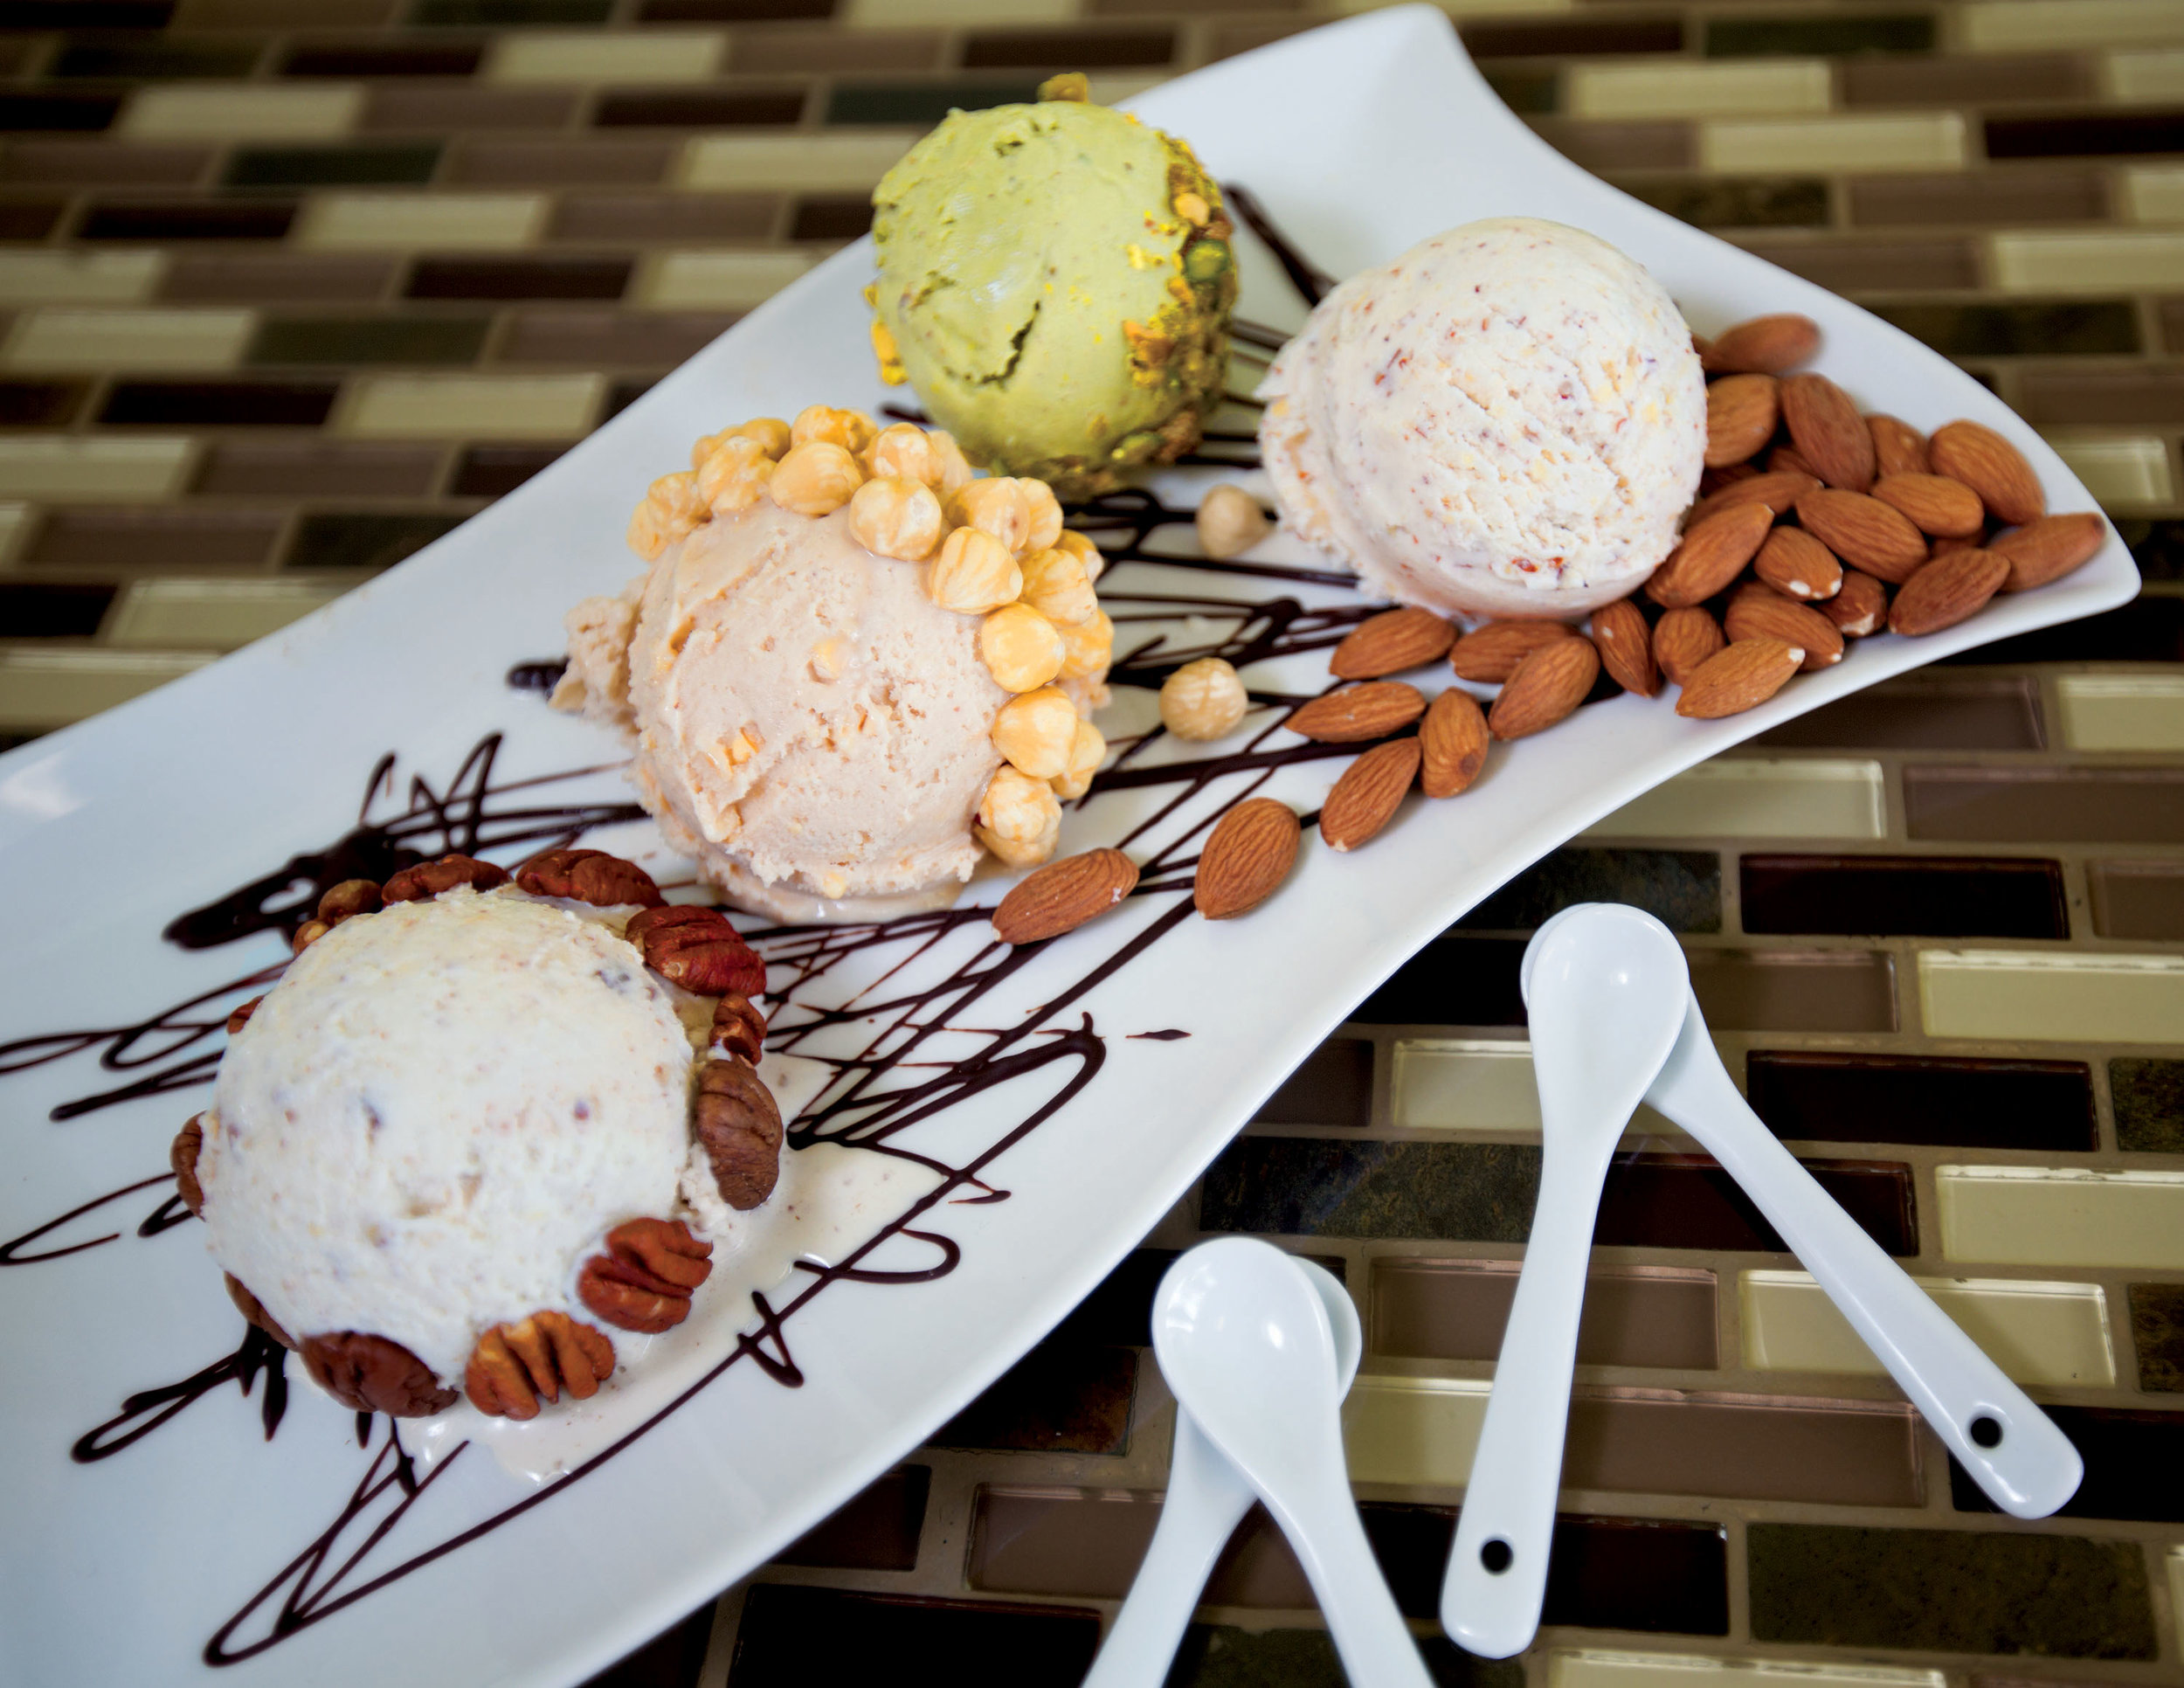 Choose from more than 200 different flavors of our artisan gelato, ice cream, sorbet, including vegan, and gluten free options.